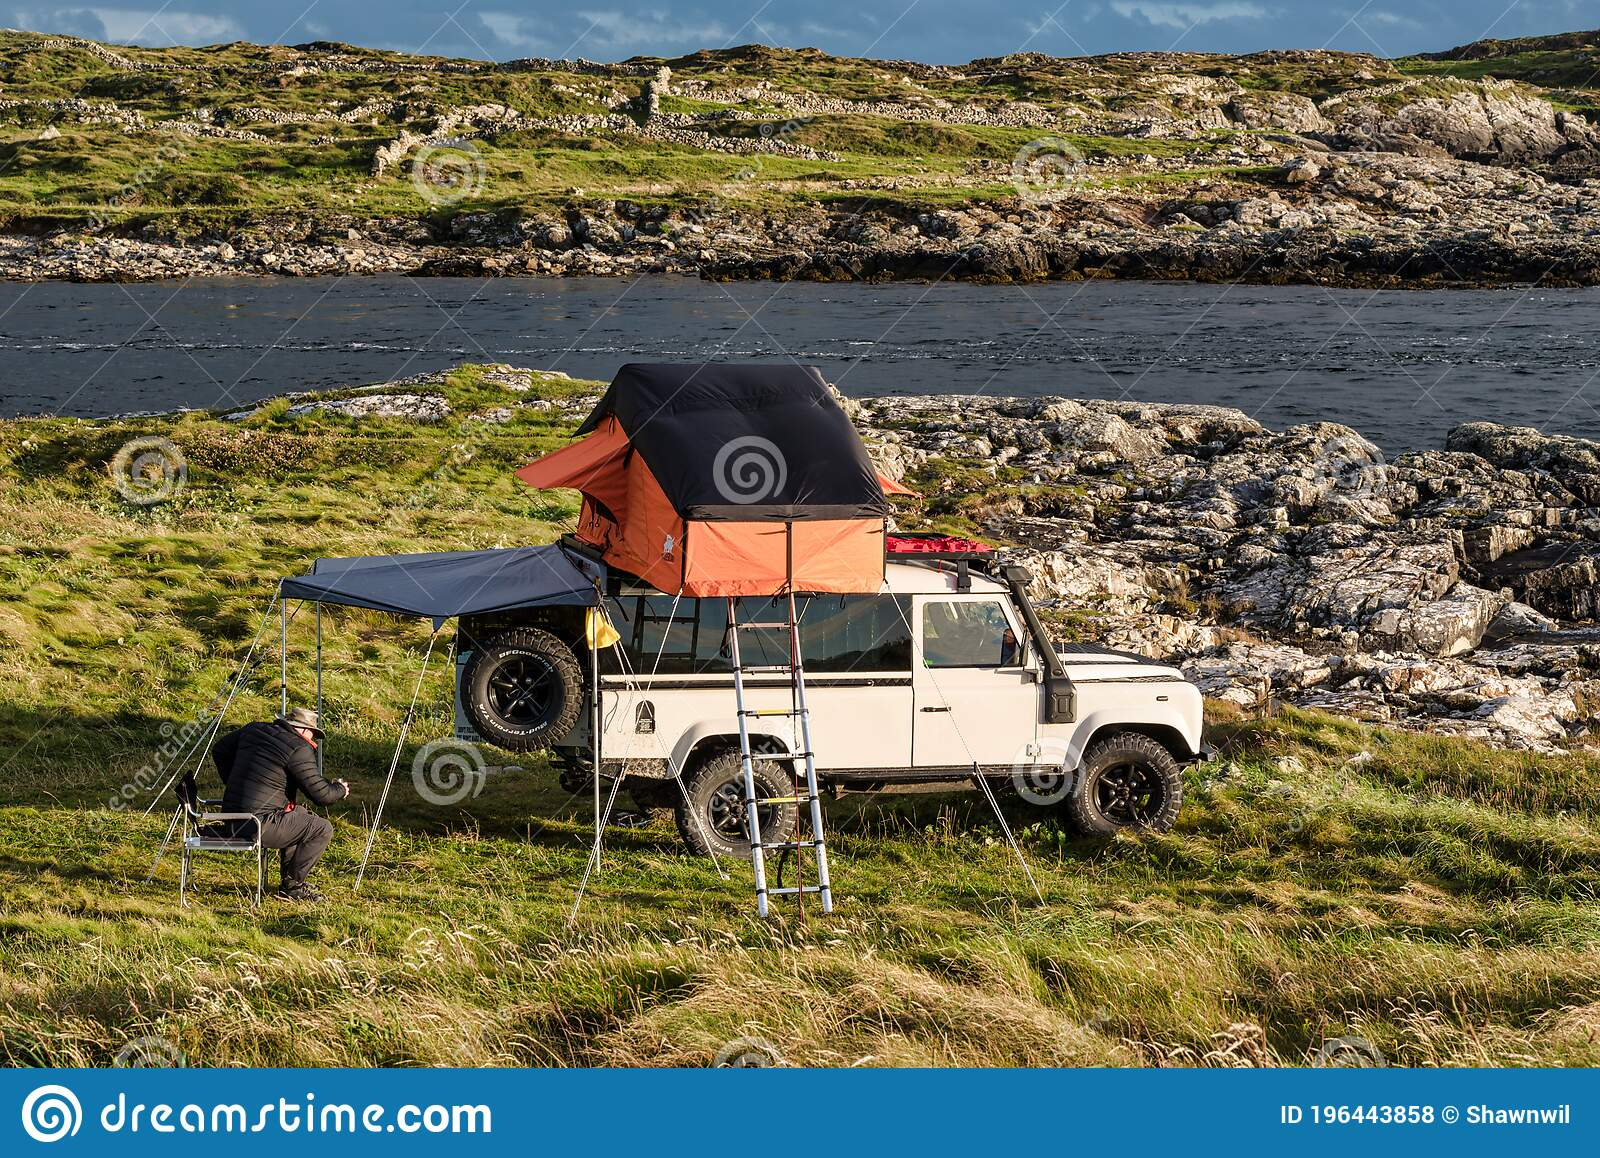 Roof Tent On Land Rover Editorial Stock Photo Image Of Outdoor 196443858